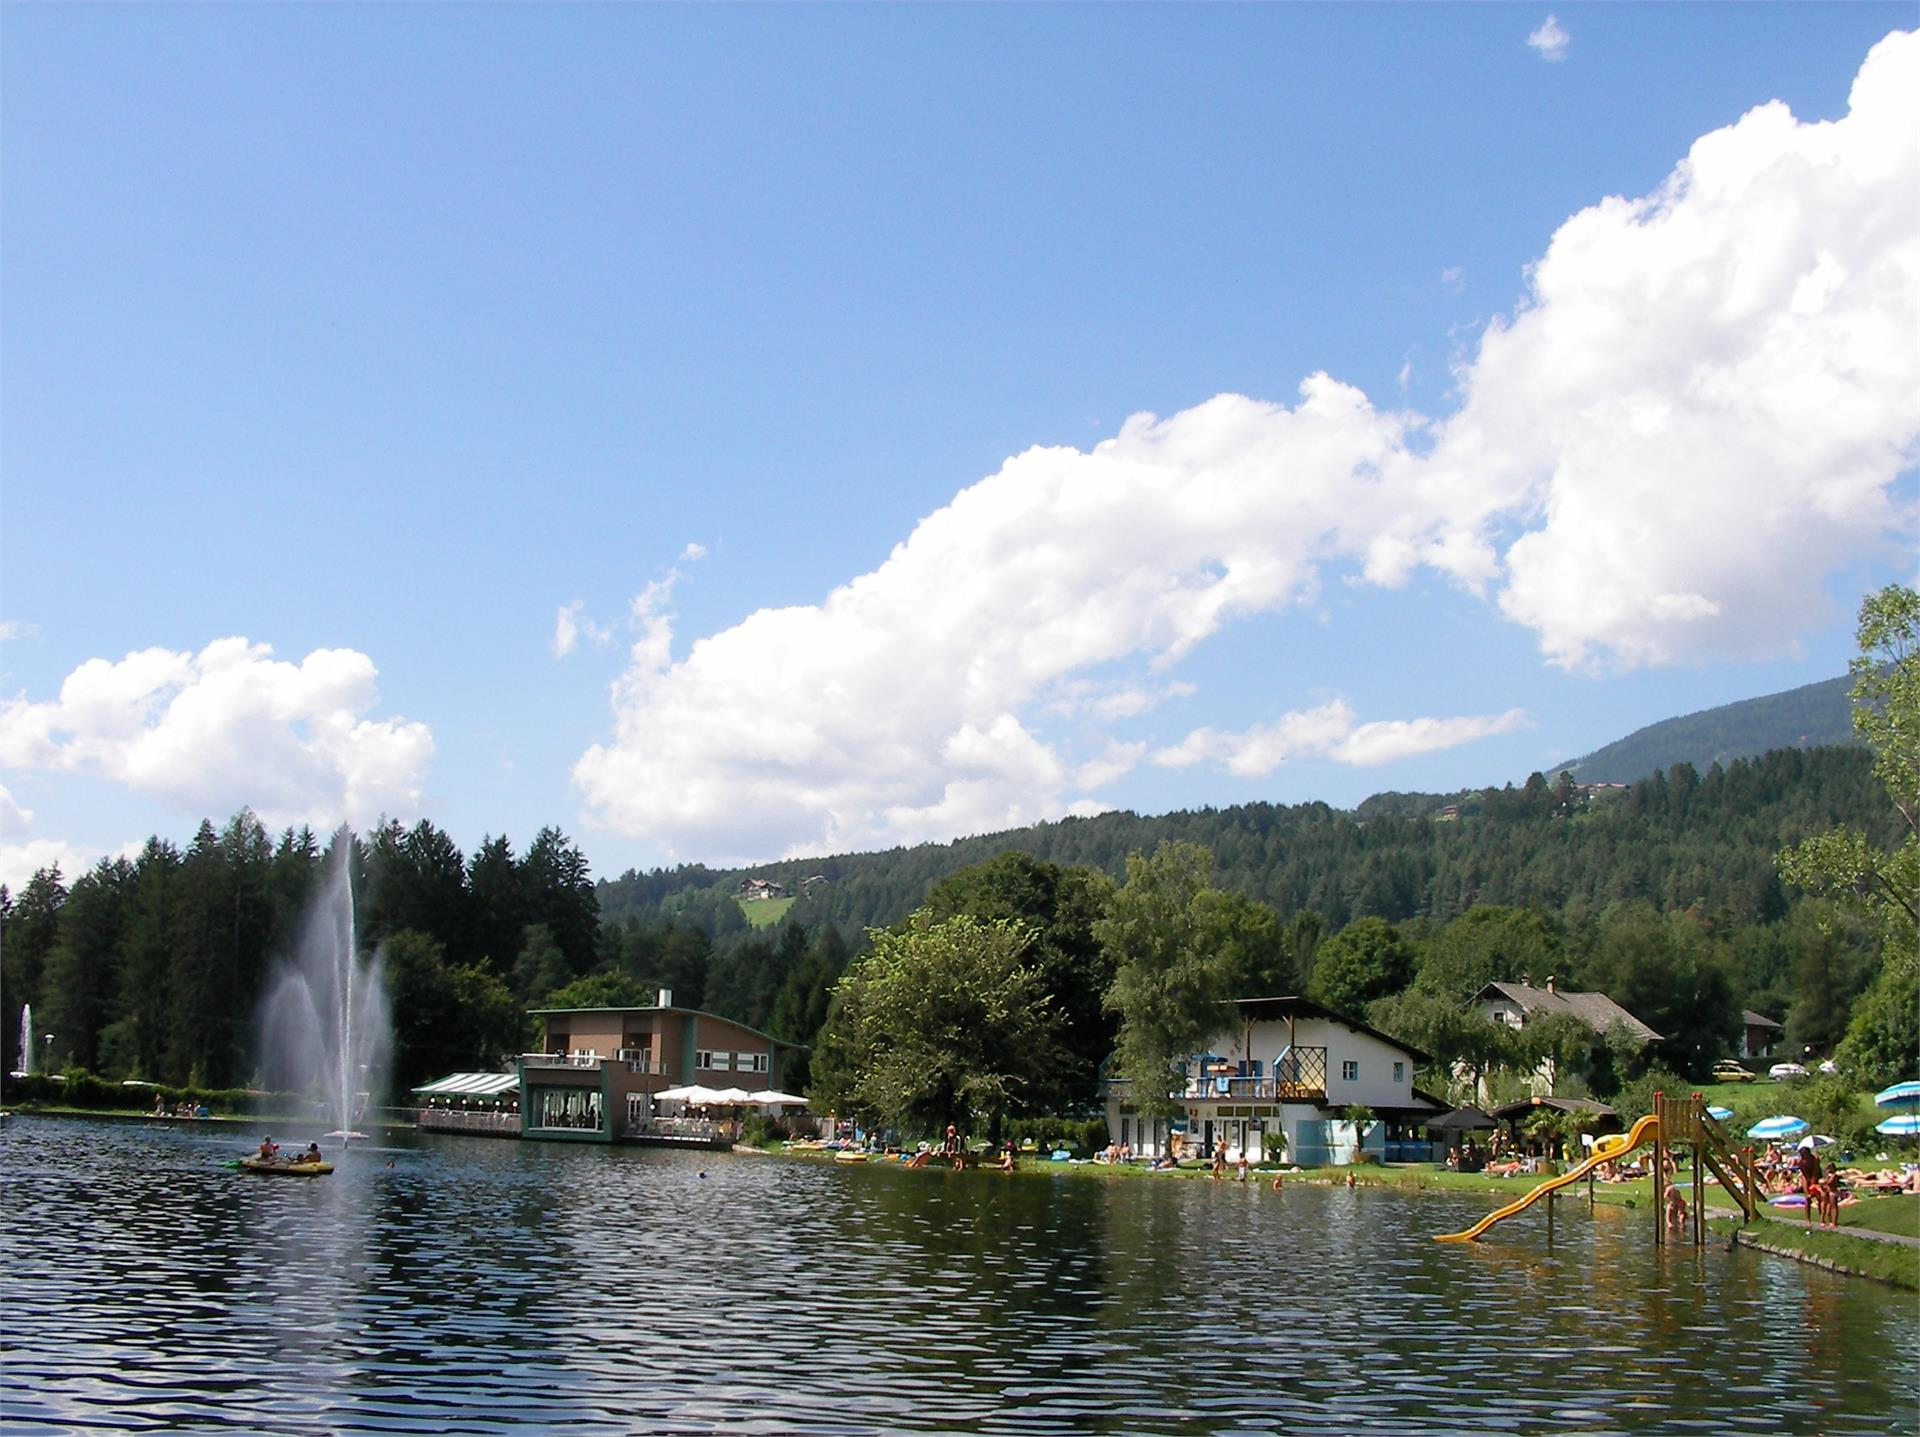 Lake Issinger Weiher